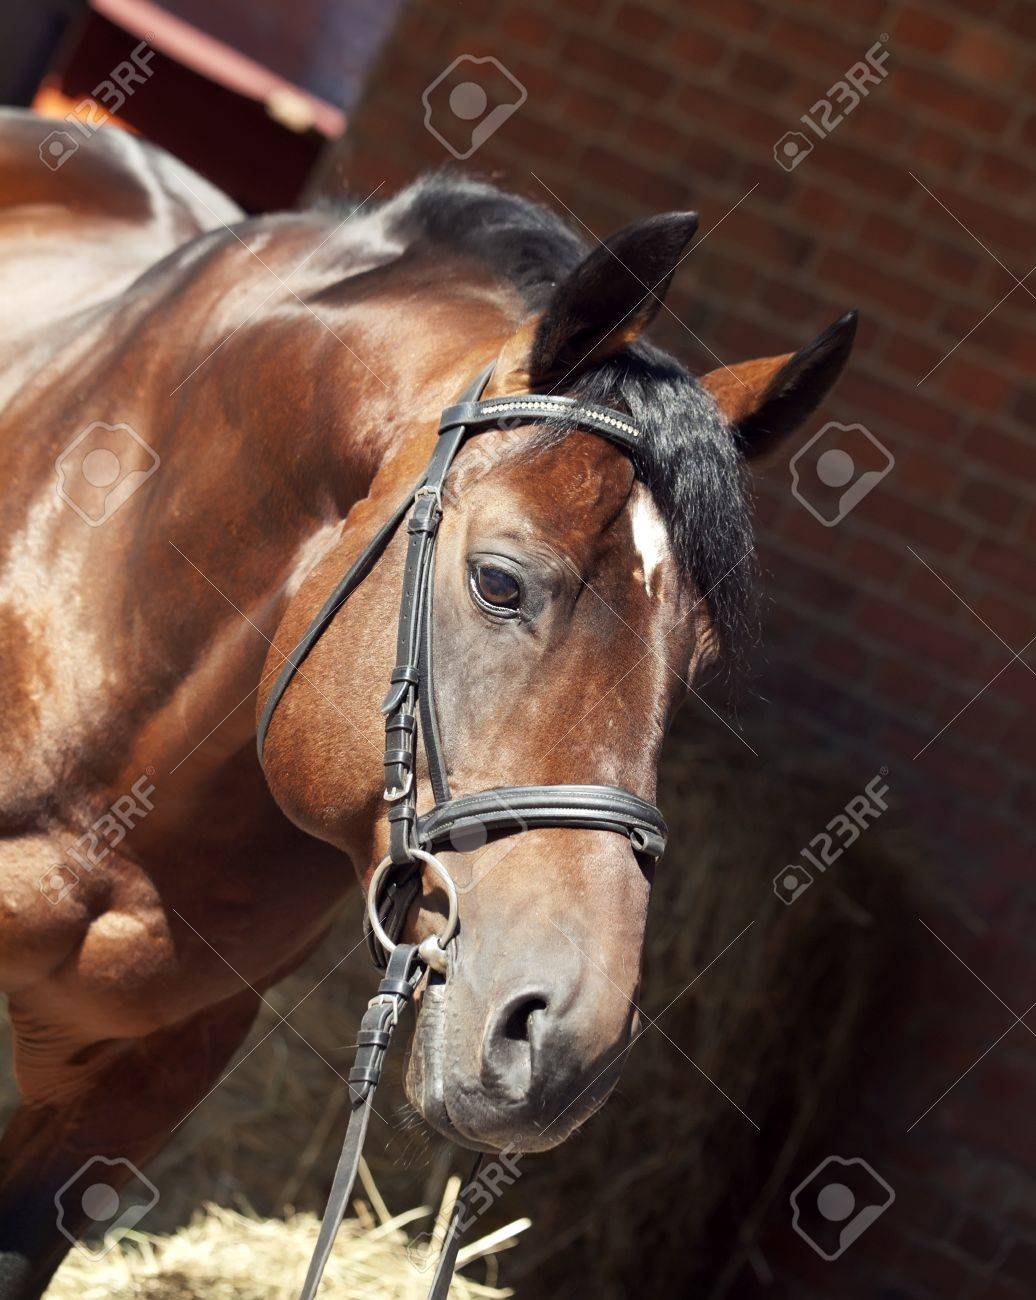 Beautiful Horse Stables Horse at Stable Background